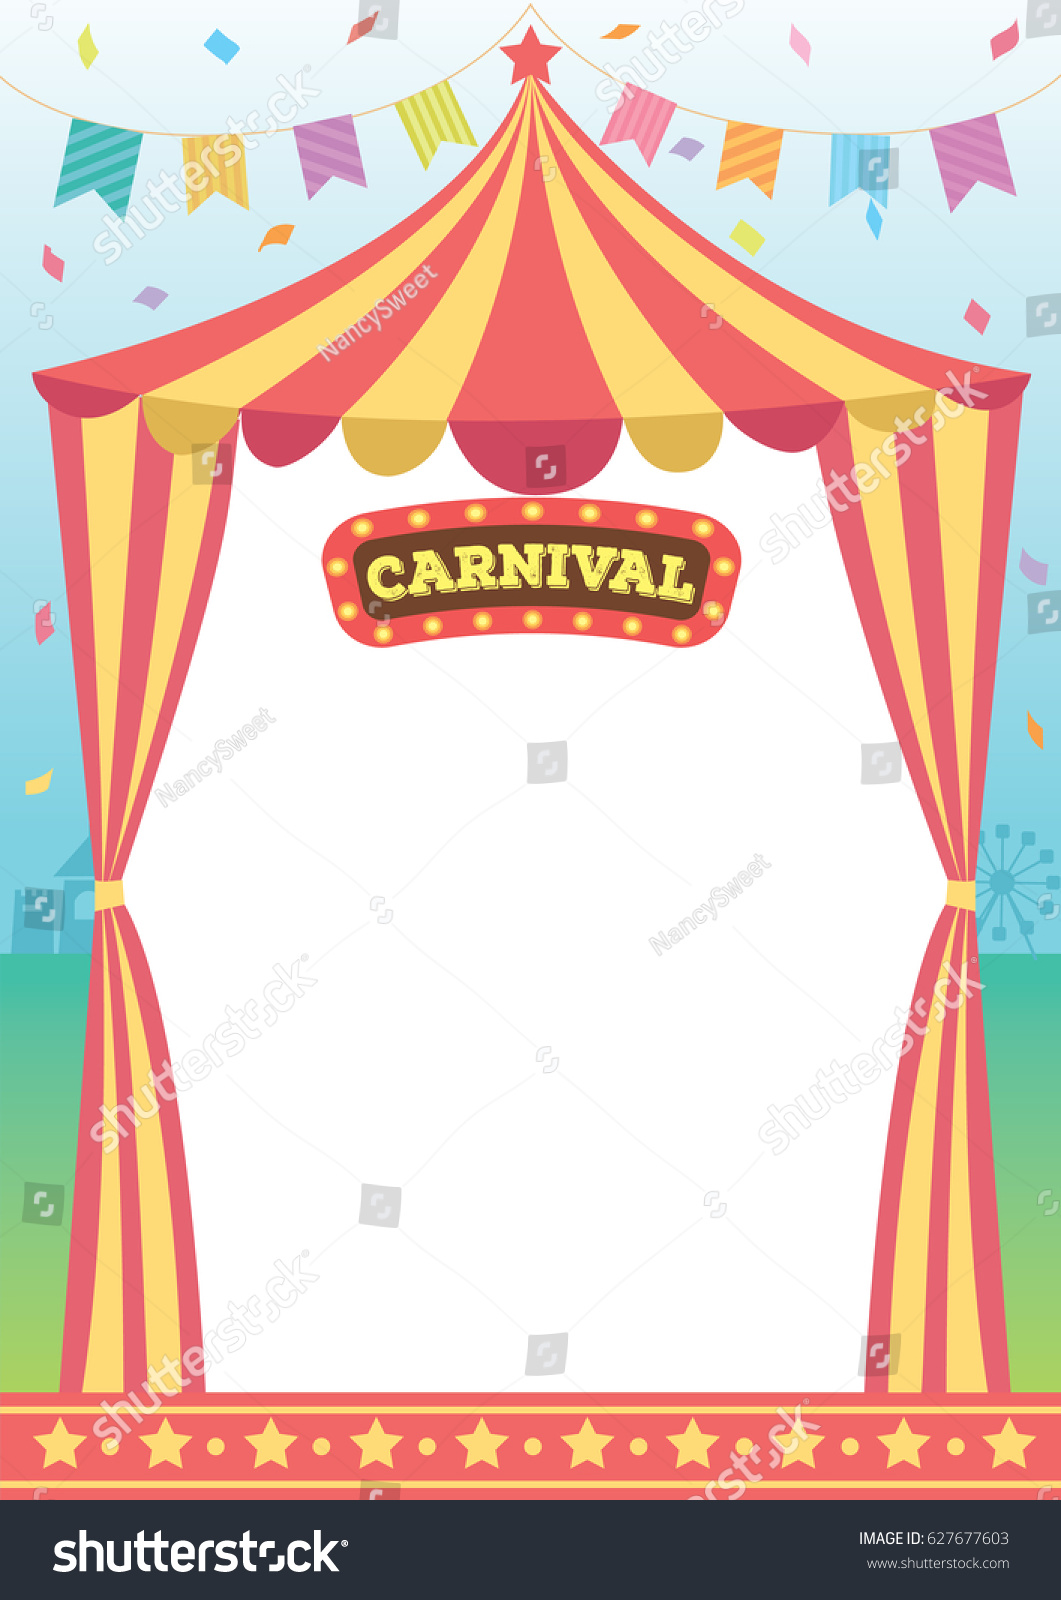 Illustration Vector Circus Tent Carnival Decorated Stock Vector